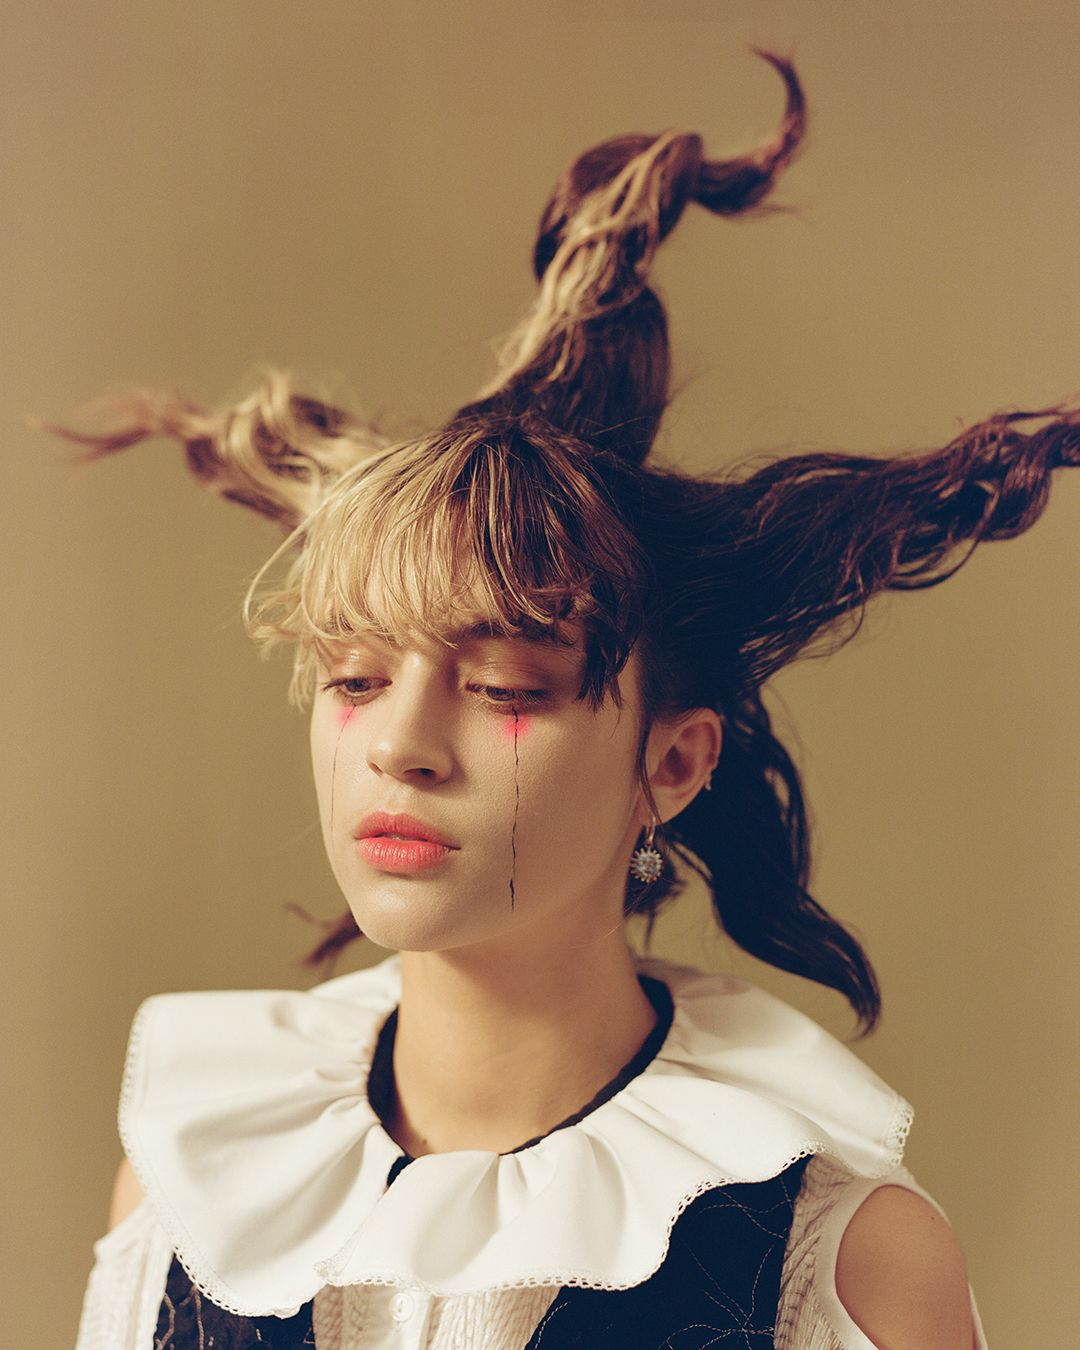 Photo of the french singer pomme with extravagant hair